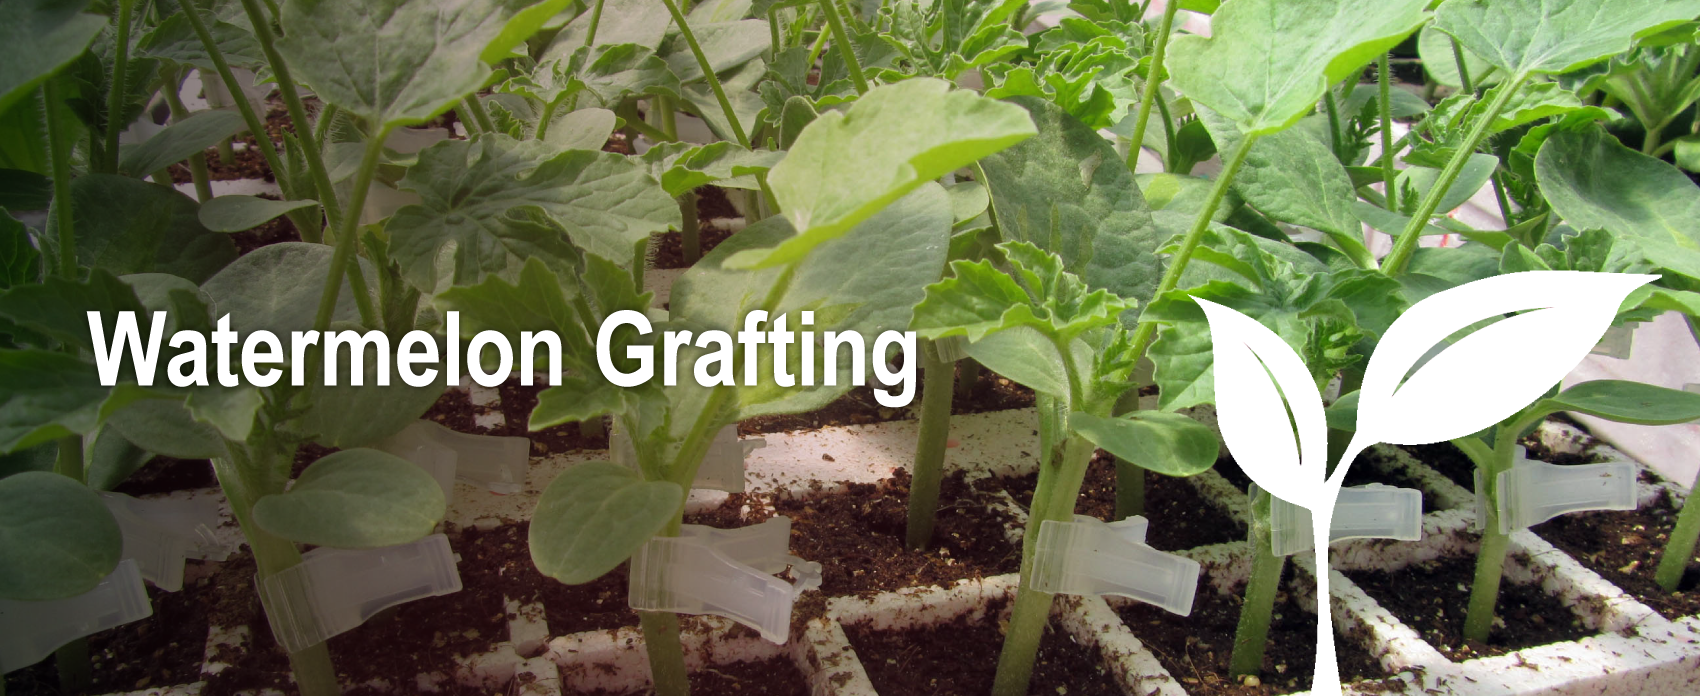 Grafting sprouts of watermelon plants